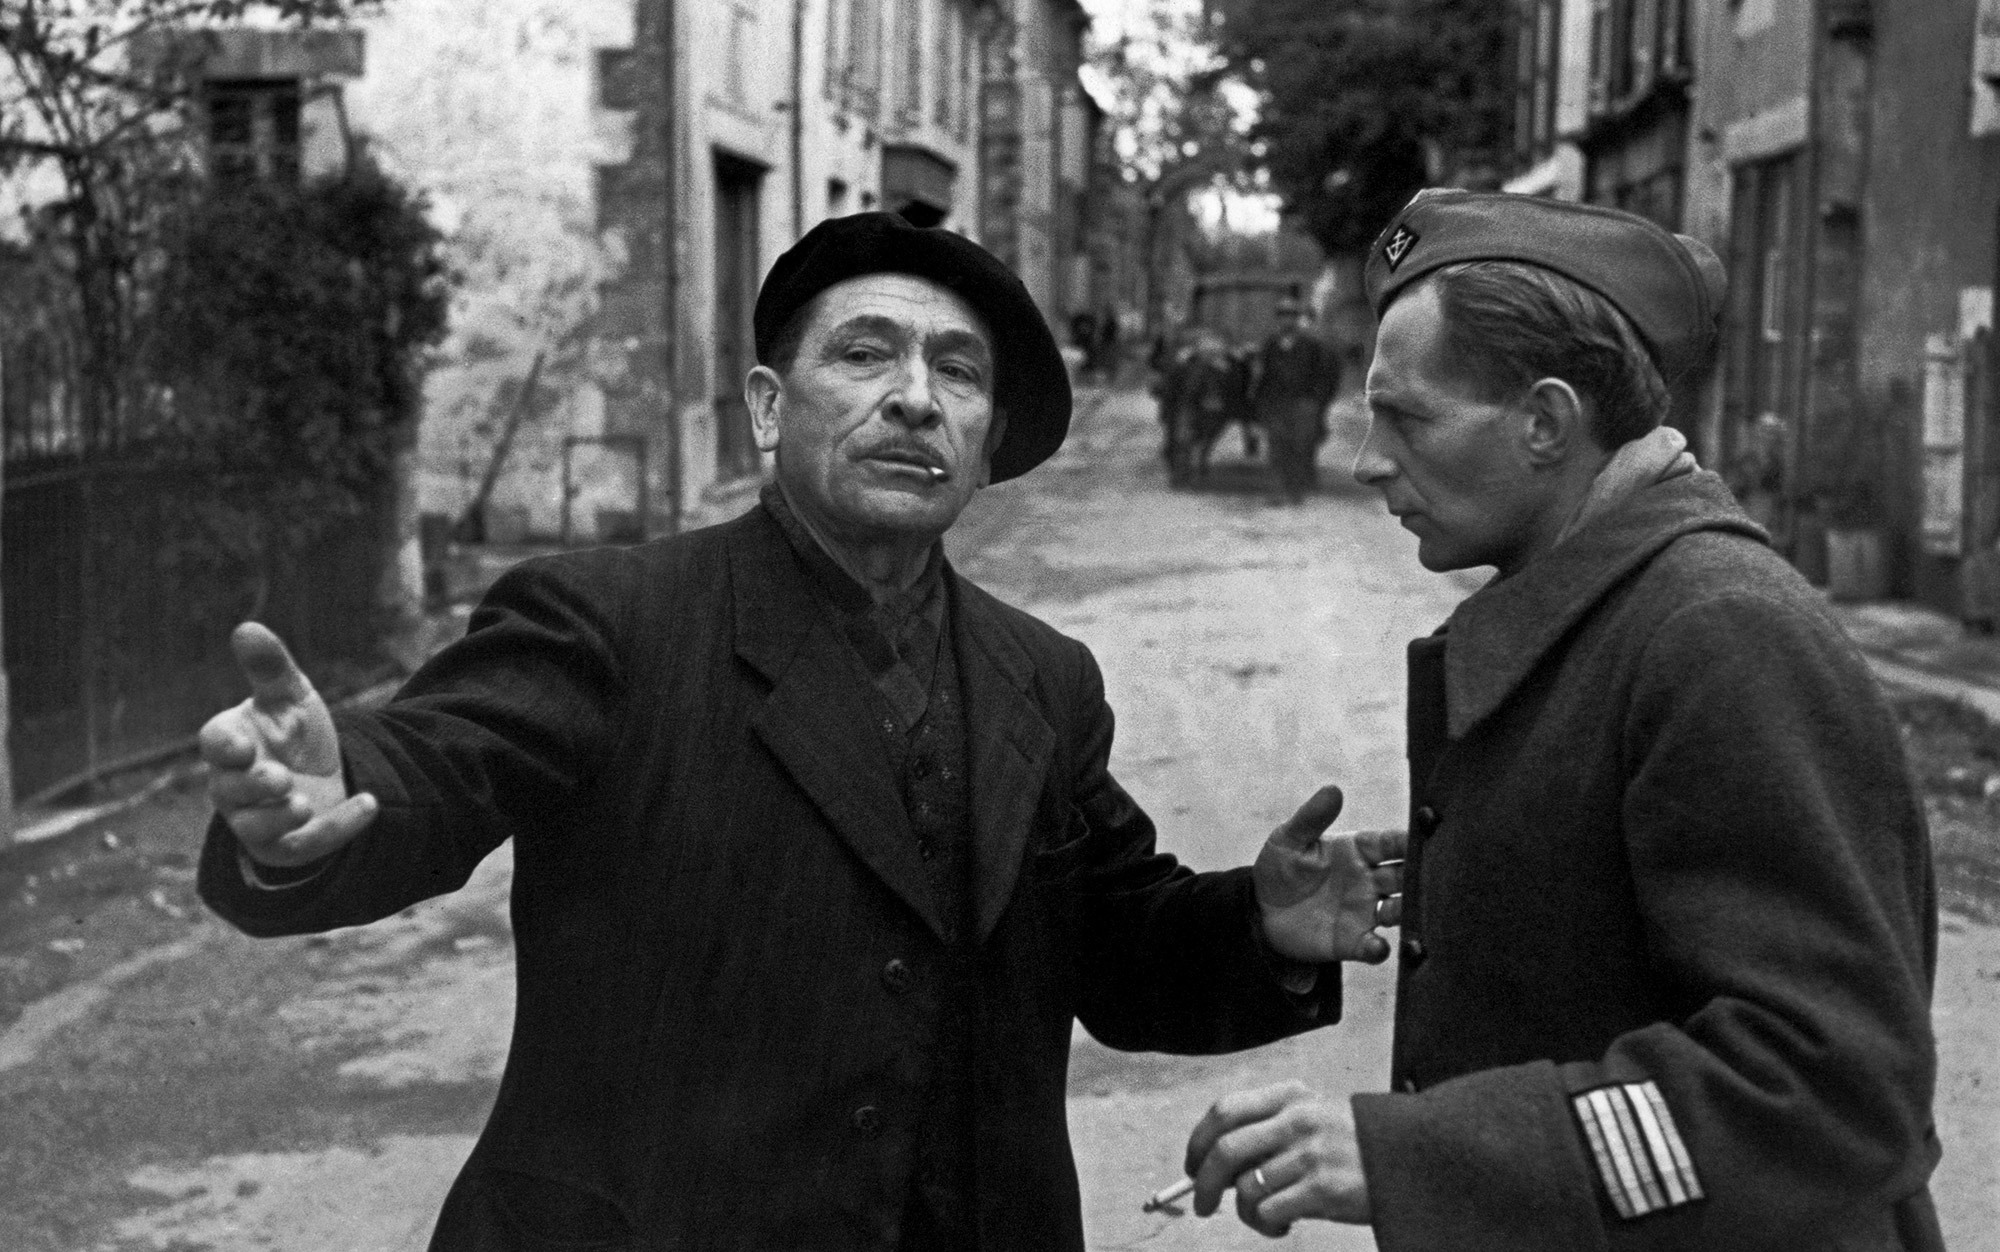 Resultado de imagem para The chéf of the Resistance Photo by Henri Cartier-Bresson/Magnum